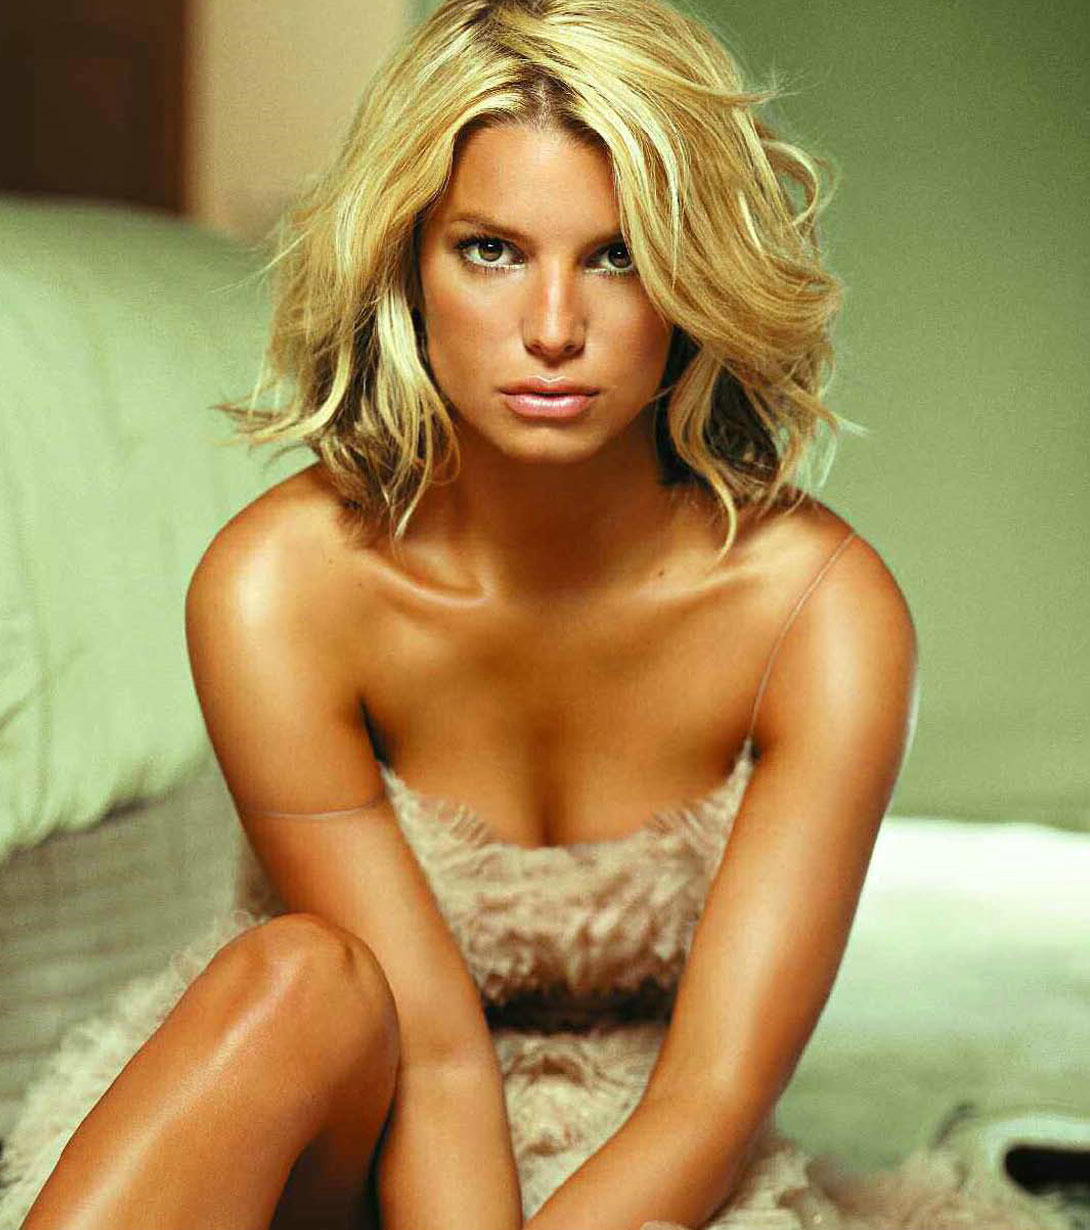 jessica simpson sitting on bed